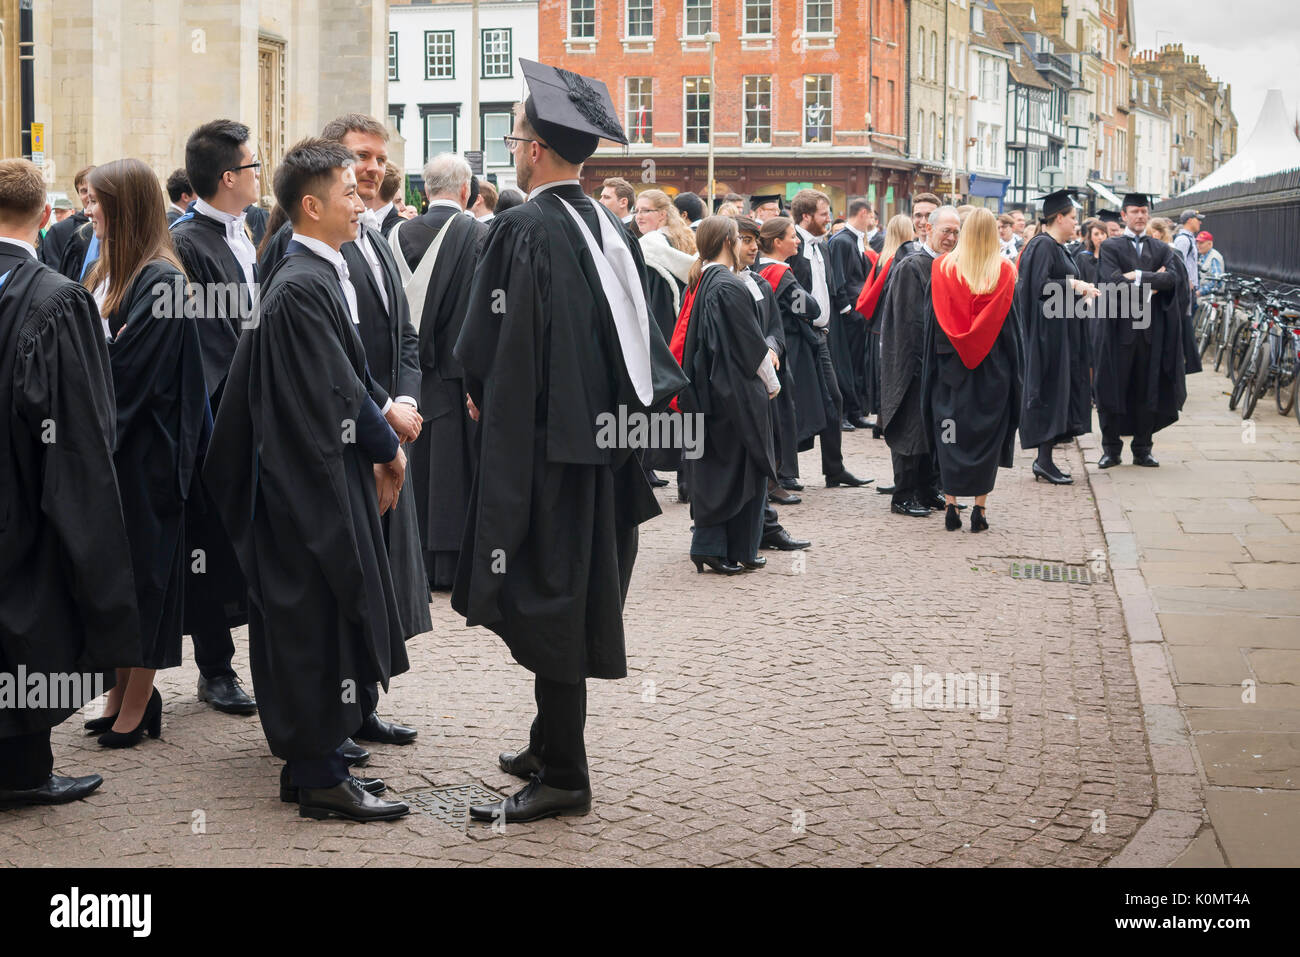 students-graduation-uk-undergraduates-as